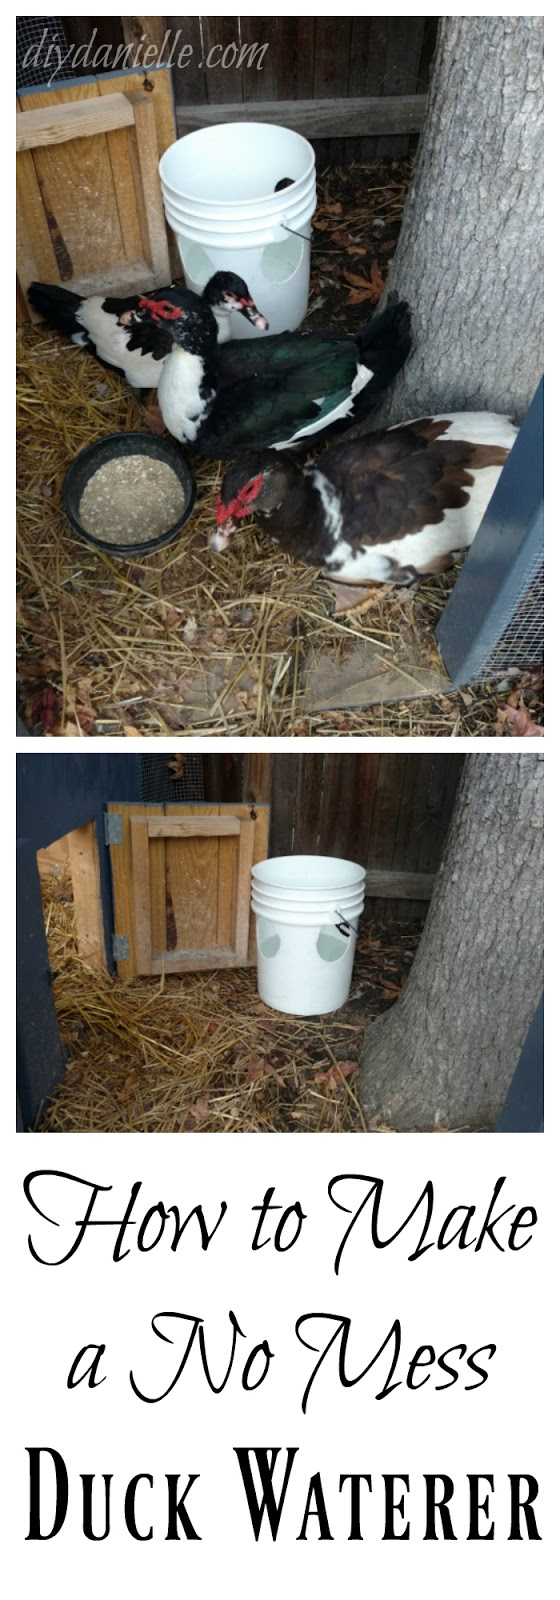 How to make a no mess duck waterer.